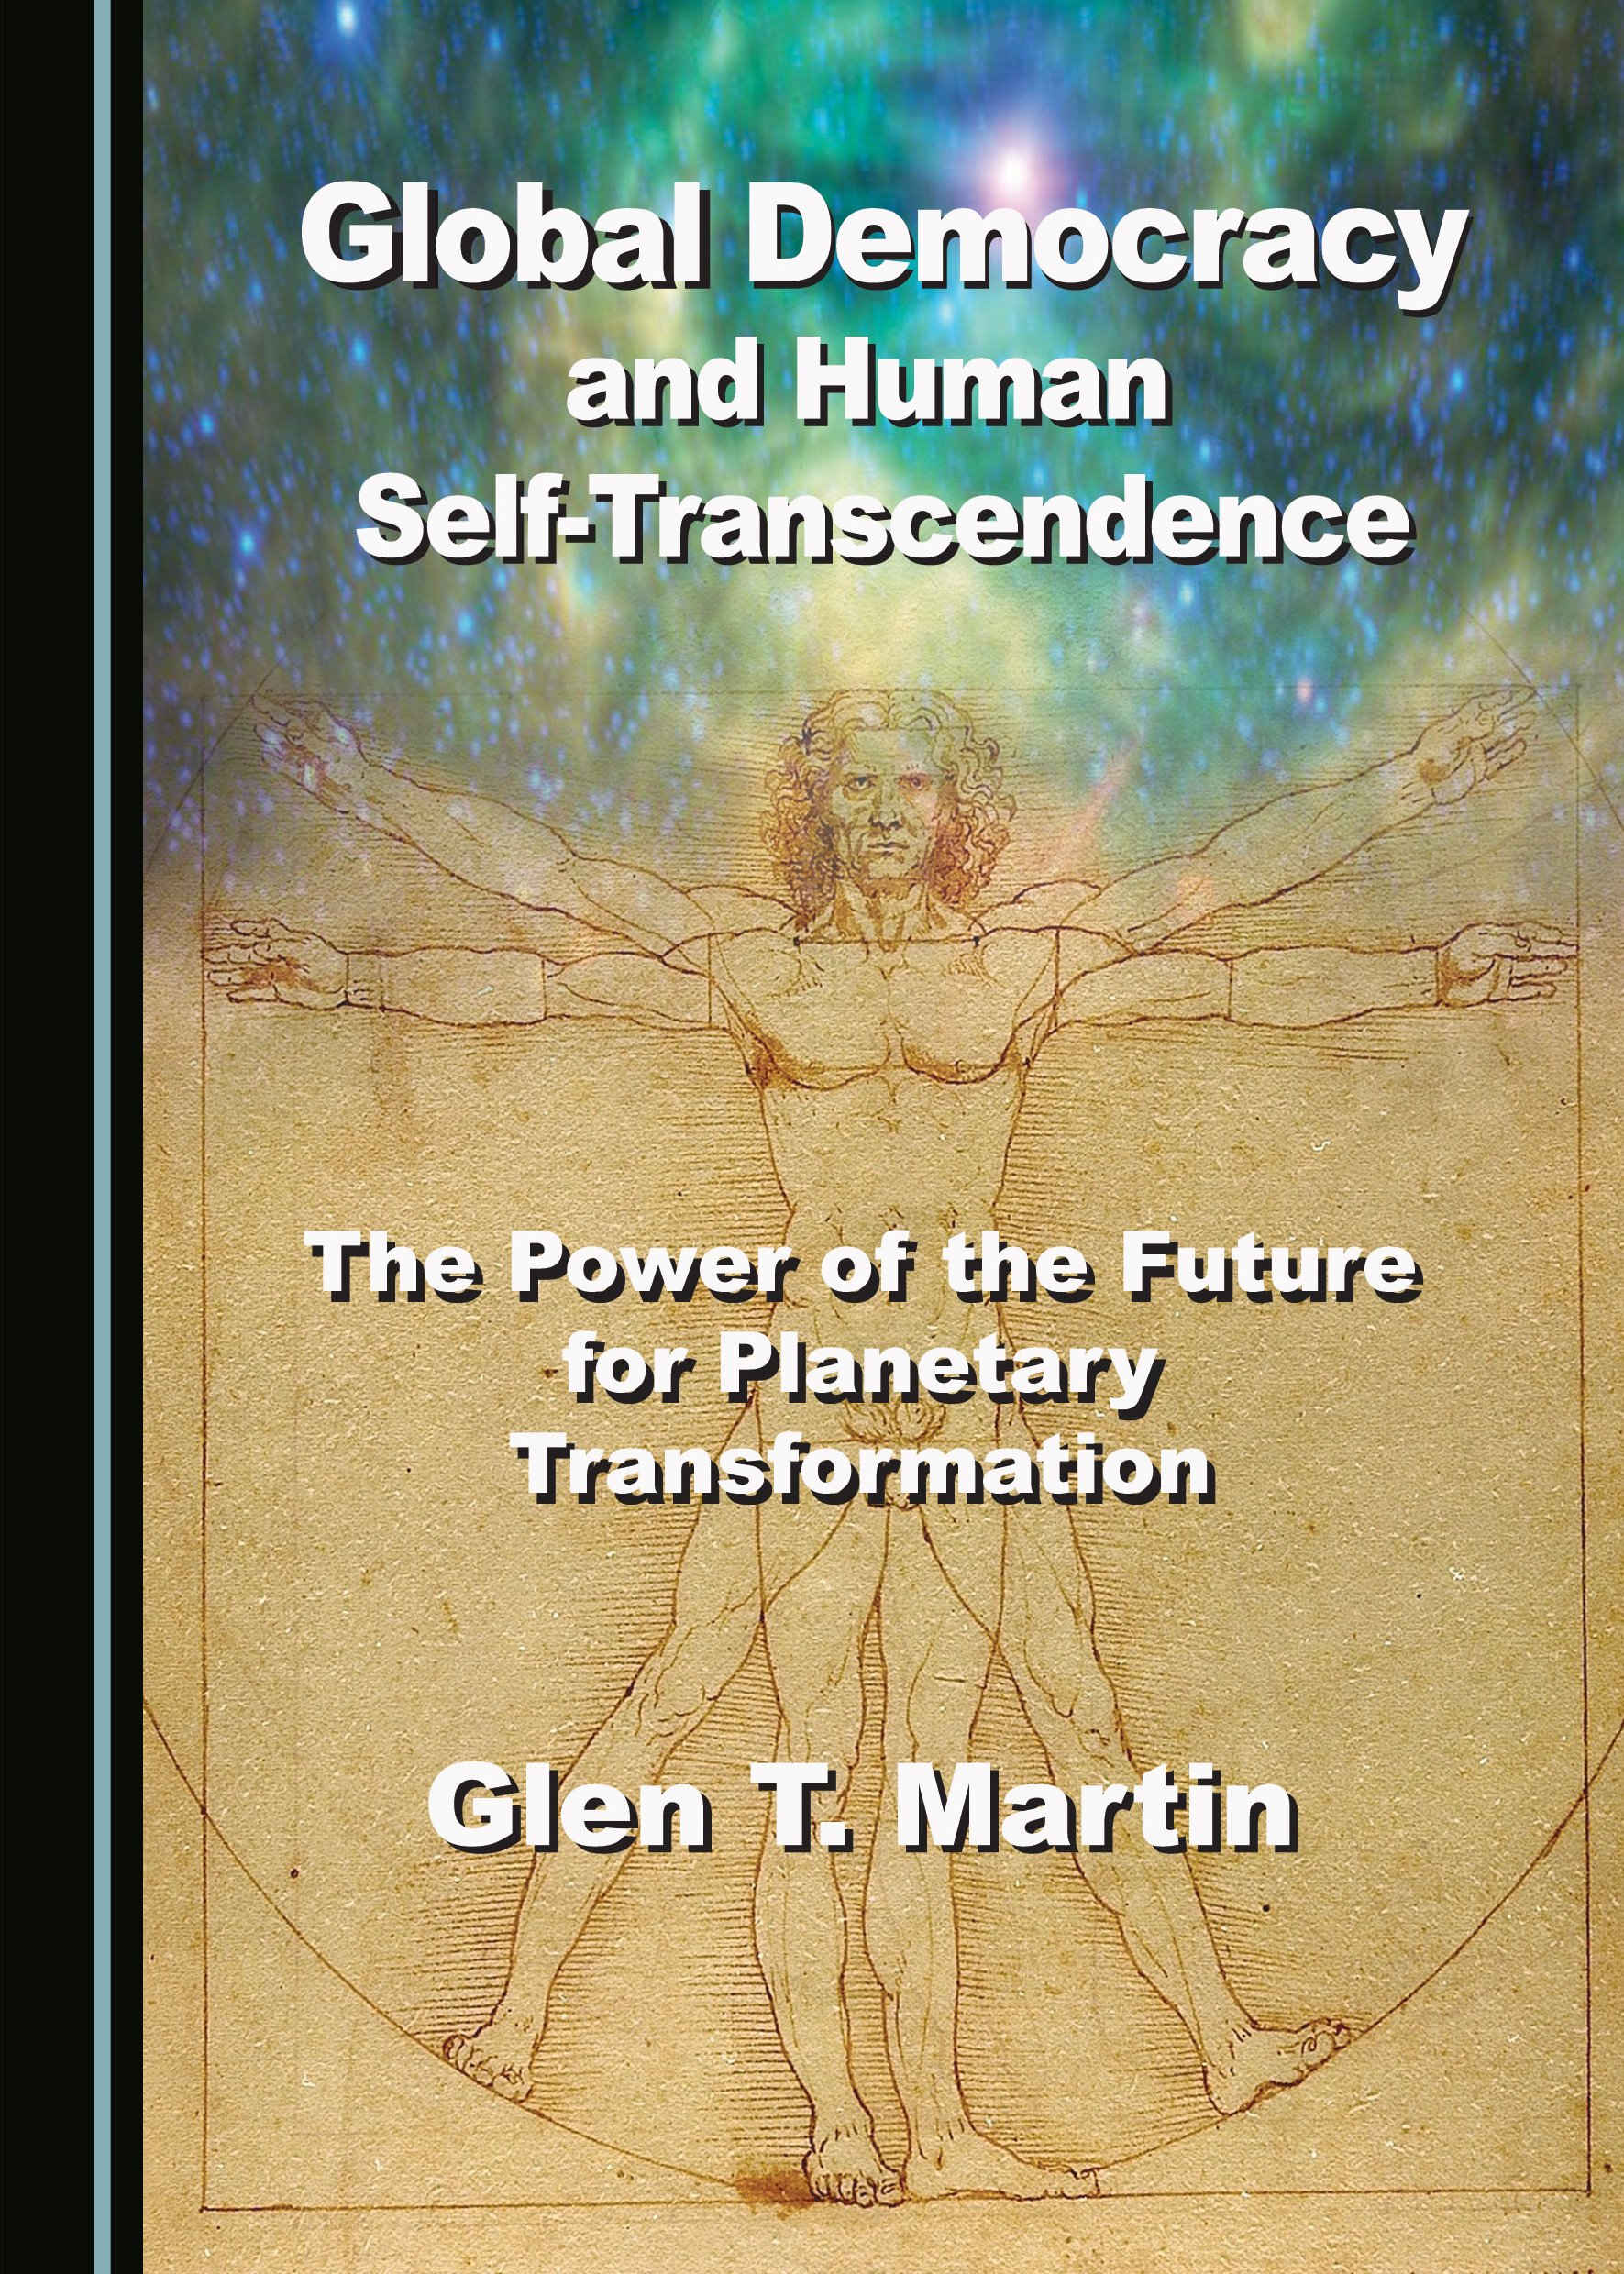 Global Democracy and Human Self-Transcendence: The Power of the Future for Planetary Transformation